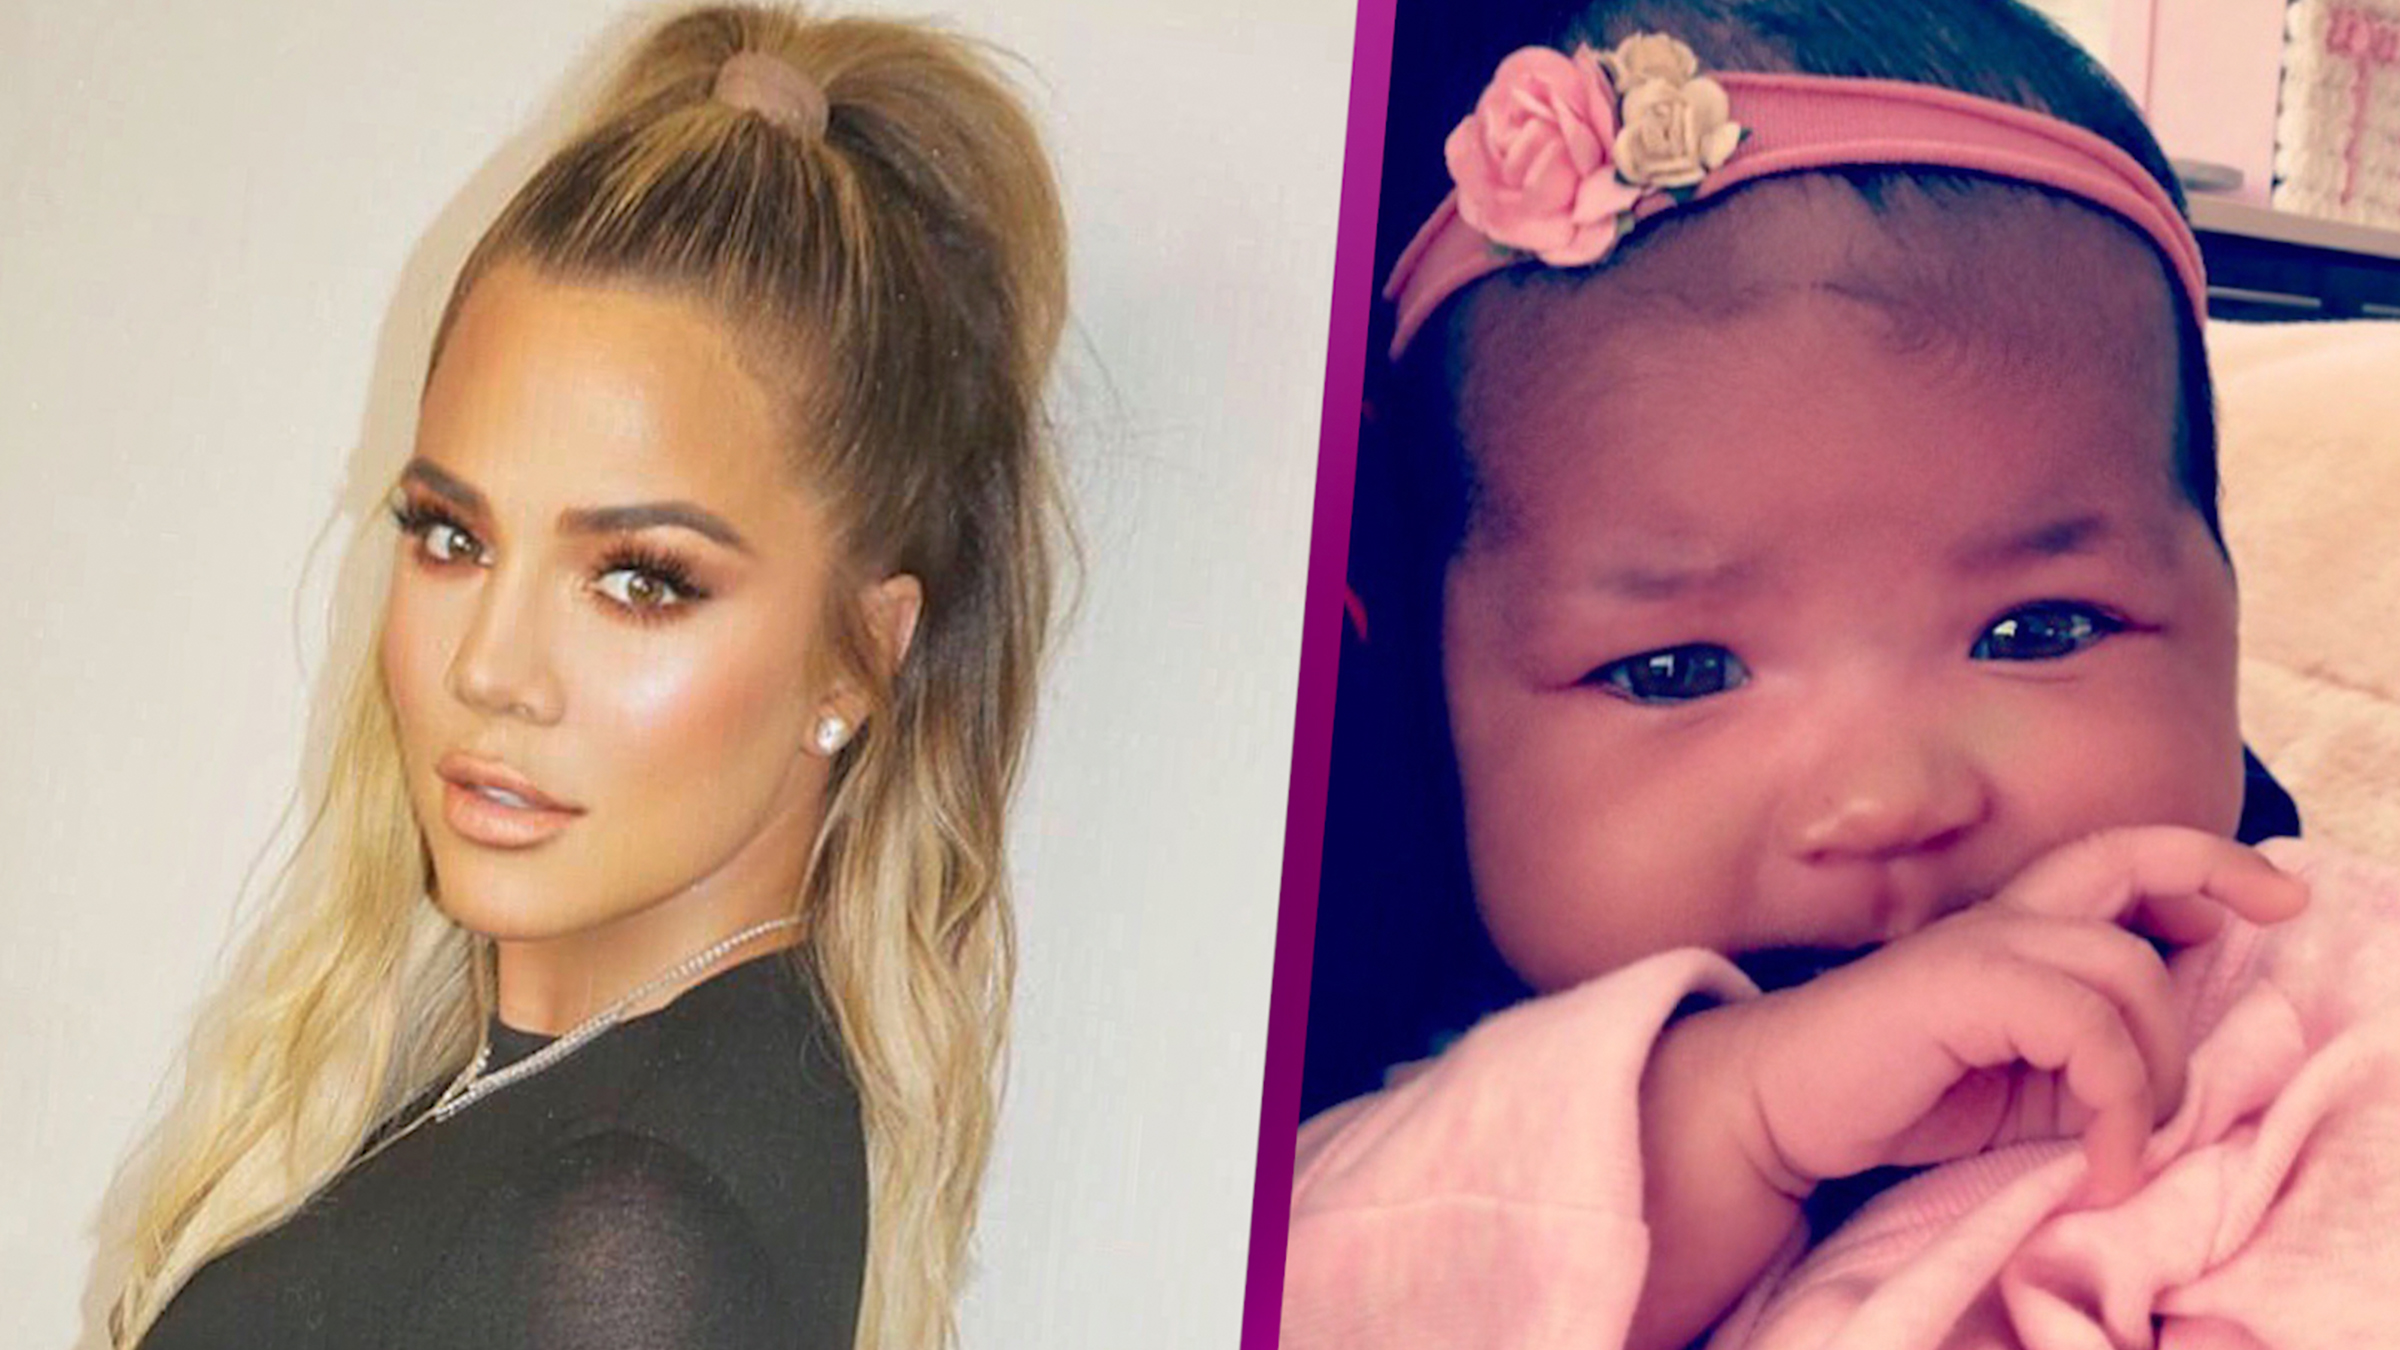 Khloé Kardashian Slams Troll Who Criticized Baby True's Appearance: 'What Type Of Disgusting Human Being Are You?' Read more at http://www.accessonline.com/articles/khloe-kardashian-slams-troll-who-criticized-baby-trues-appearance-what-type-disgusting-hum